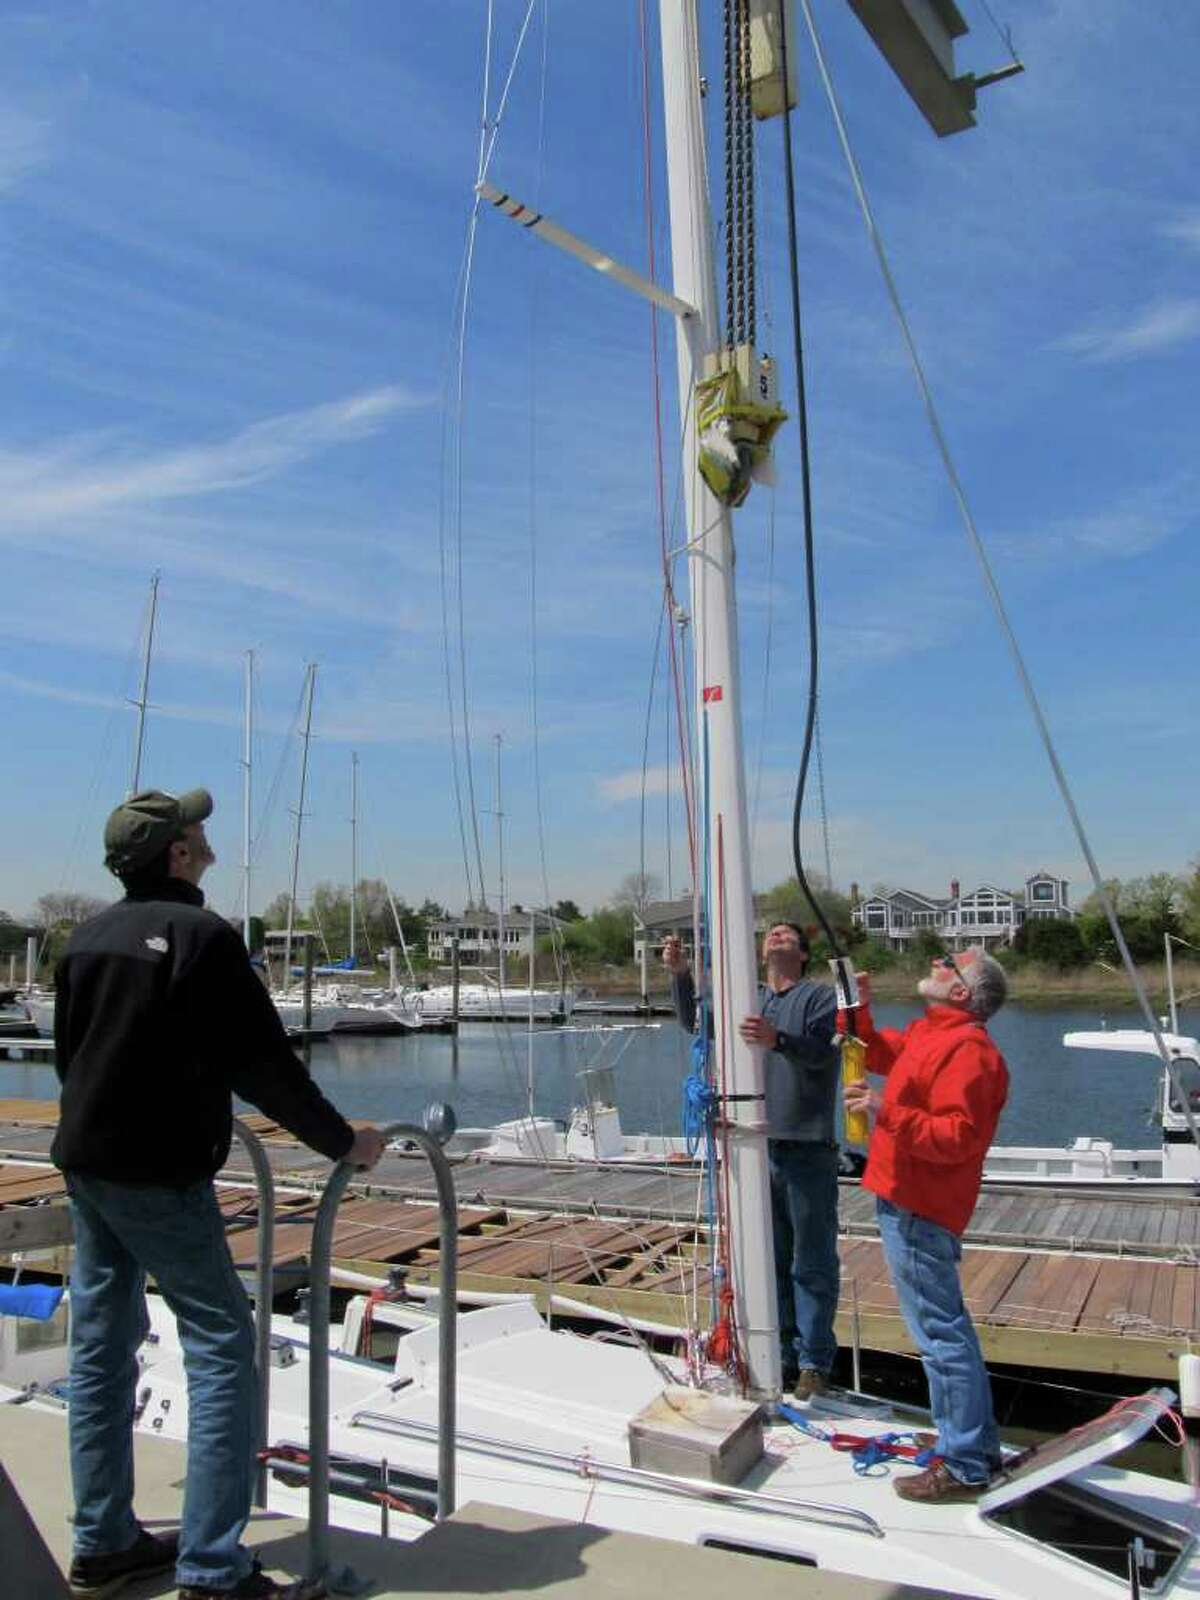 Boaters, from left to right, Bill Rivkin, Trevor Roach, and Lincoln Schoenberger put a mast on a sailboat at Cedar Point Yacht Club in Westport.